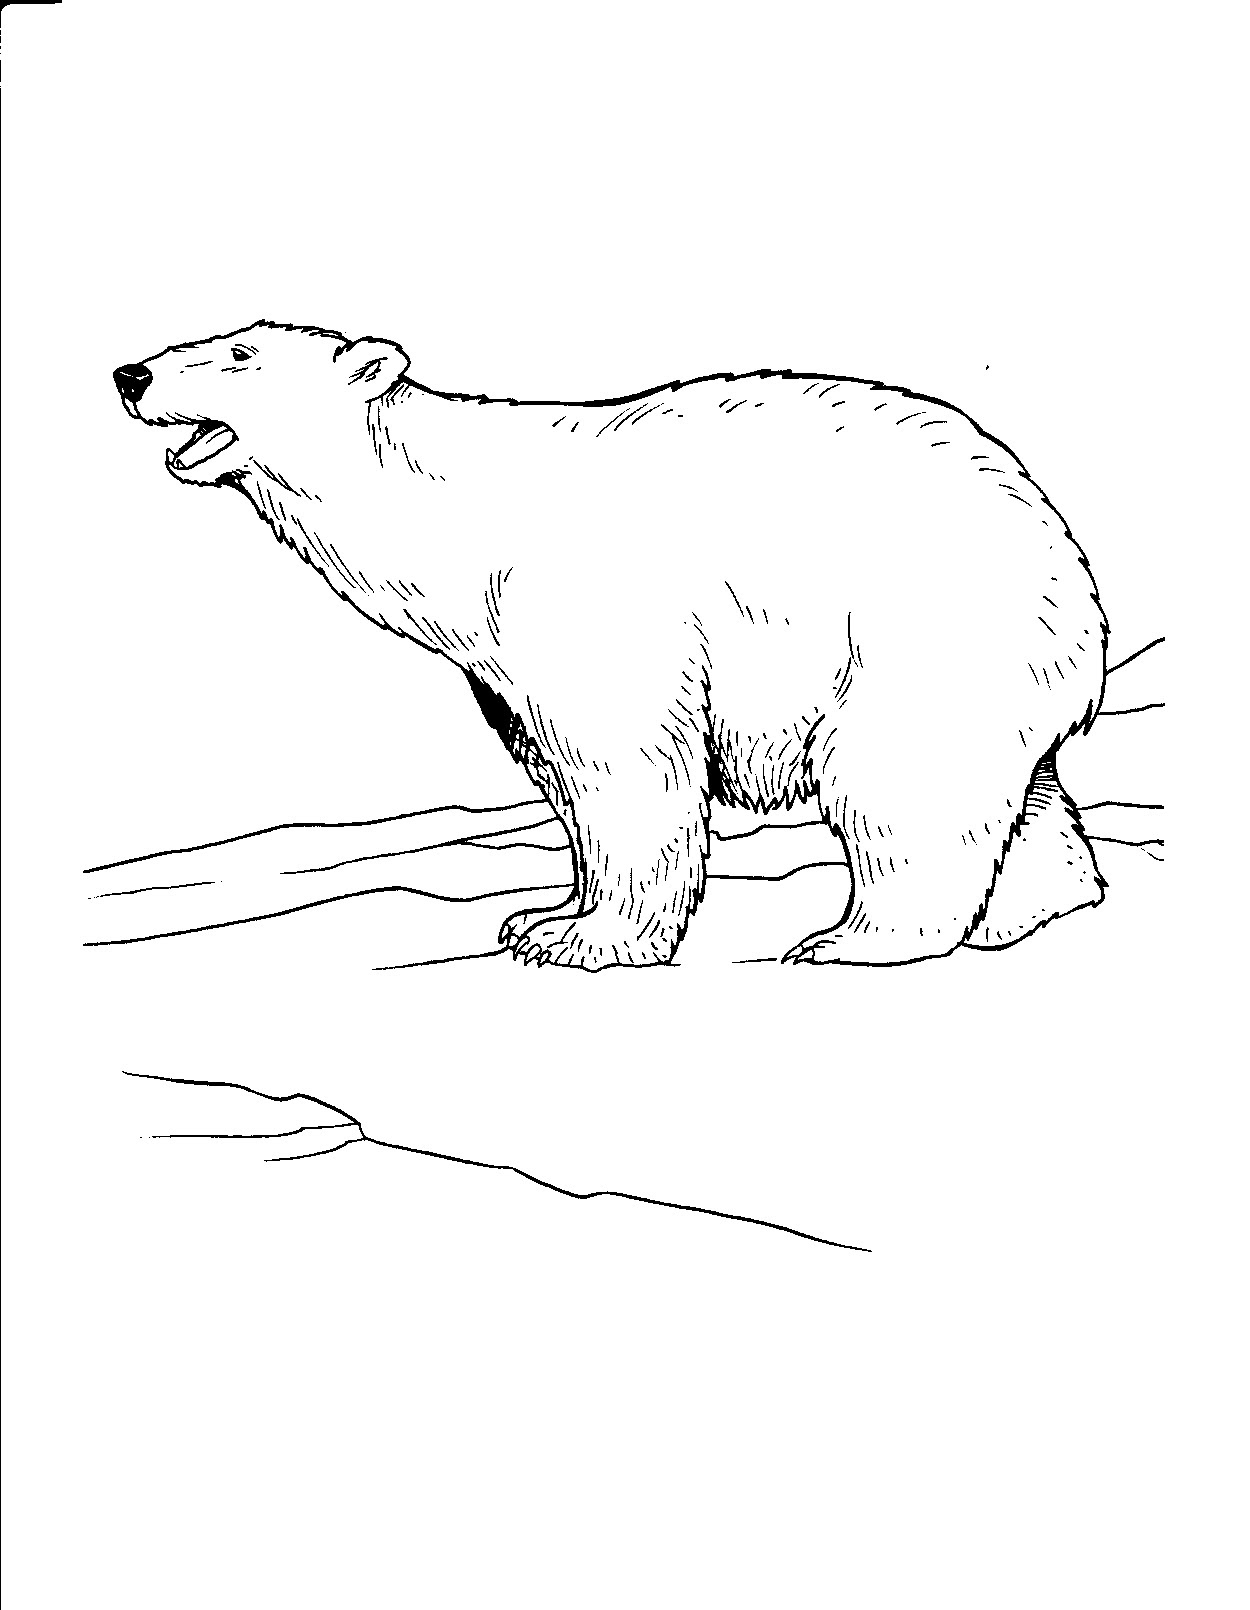 - Coloring Page: Polar Bear Free Printable Downloads From ChoreTell